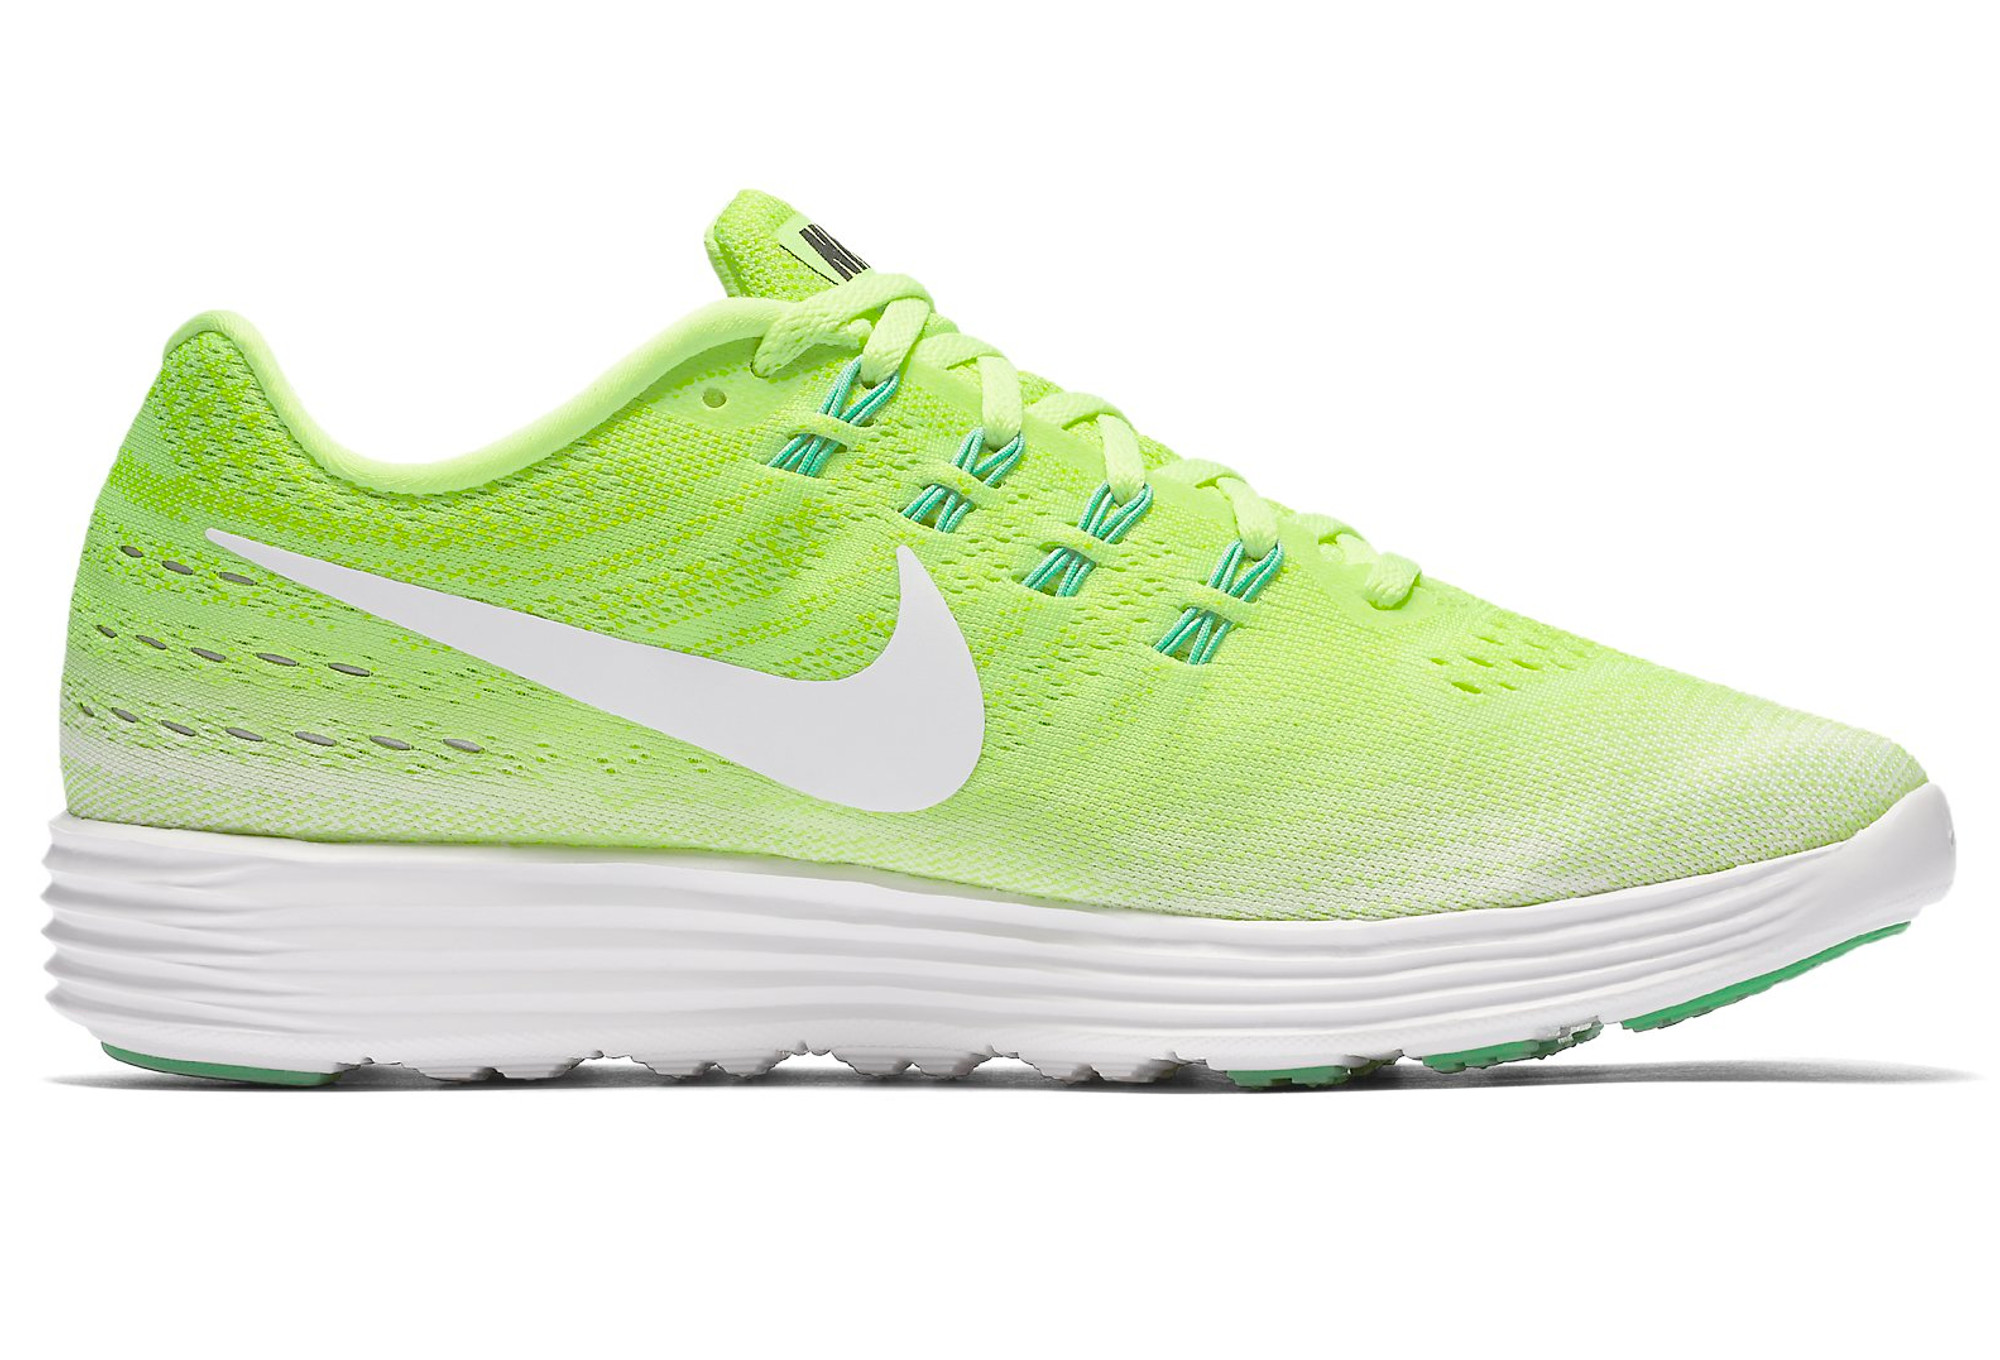 quality design 5007c 2d0ab Nike Shoes LunarTempo 2 Yellow Men